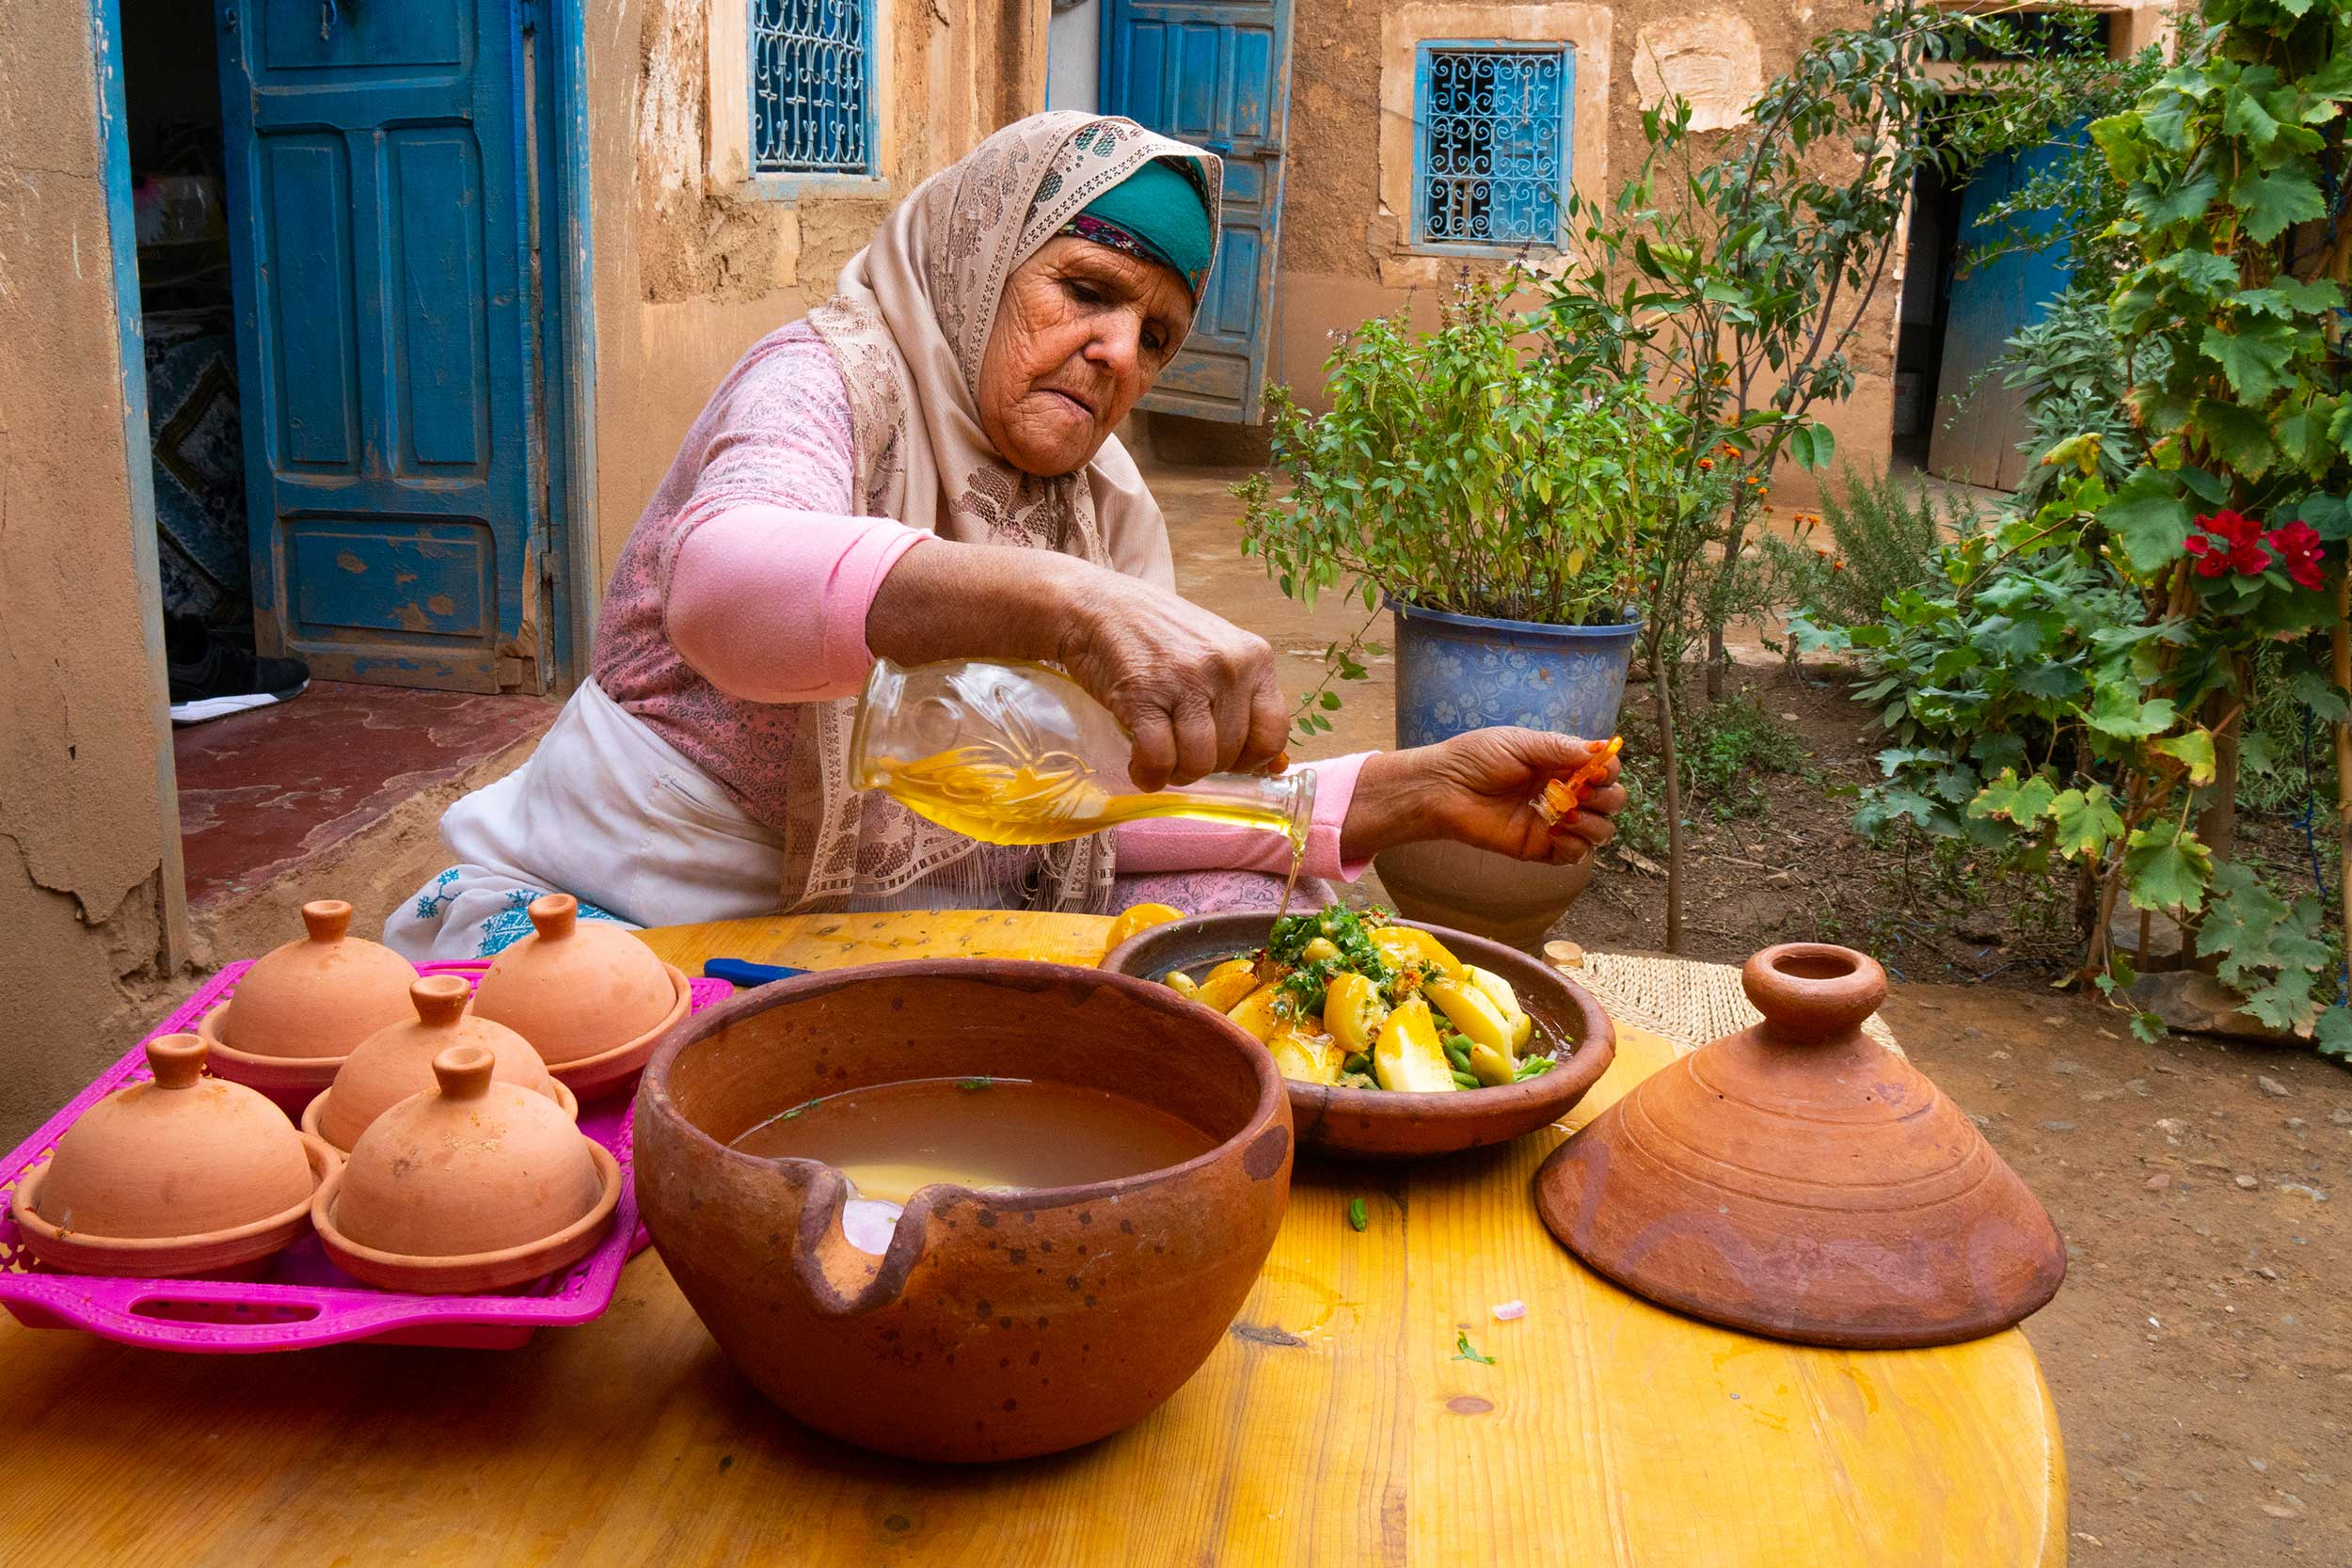 Morocco-woman-cooking-Getty.jpg